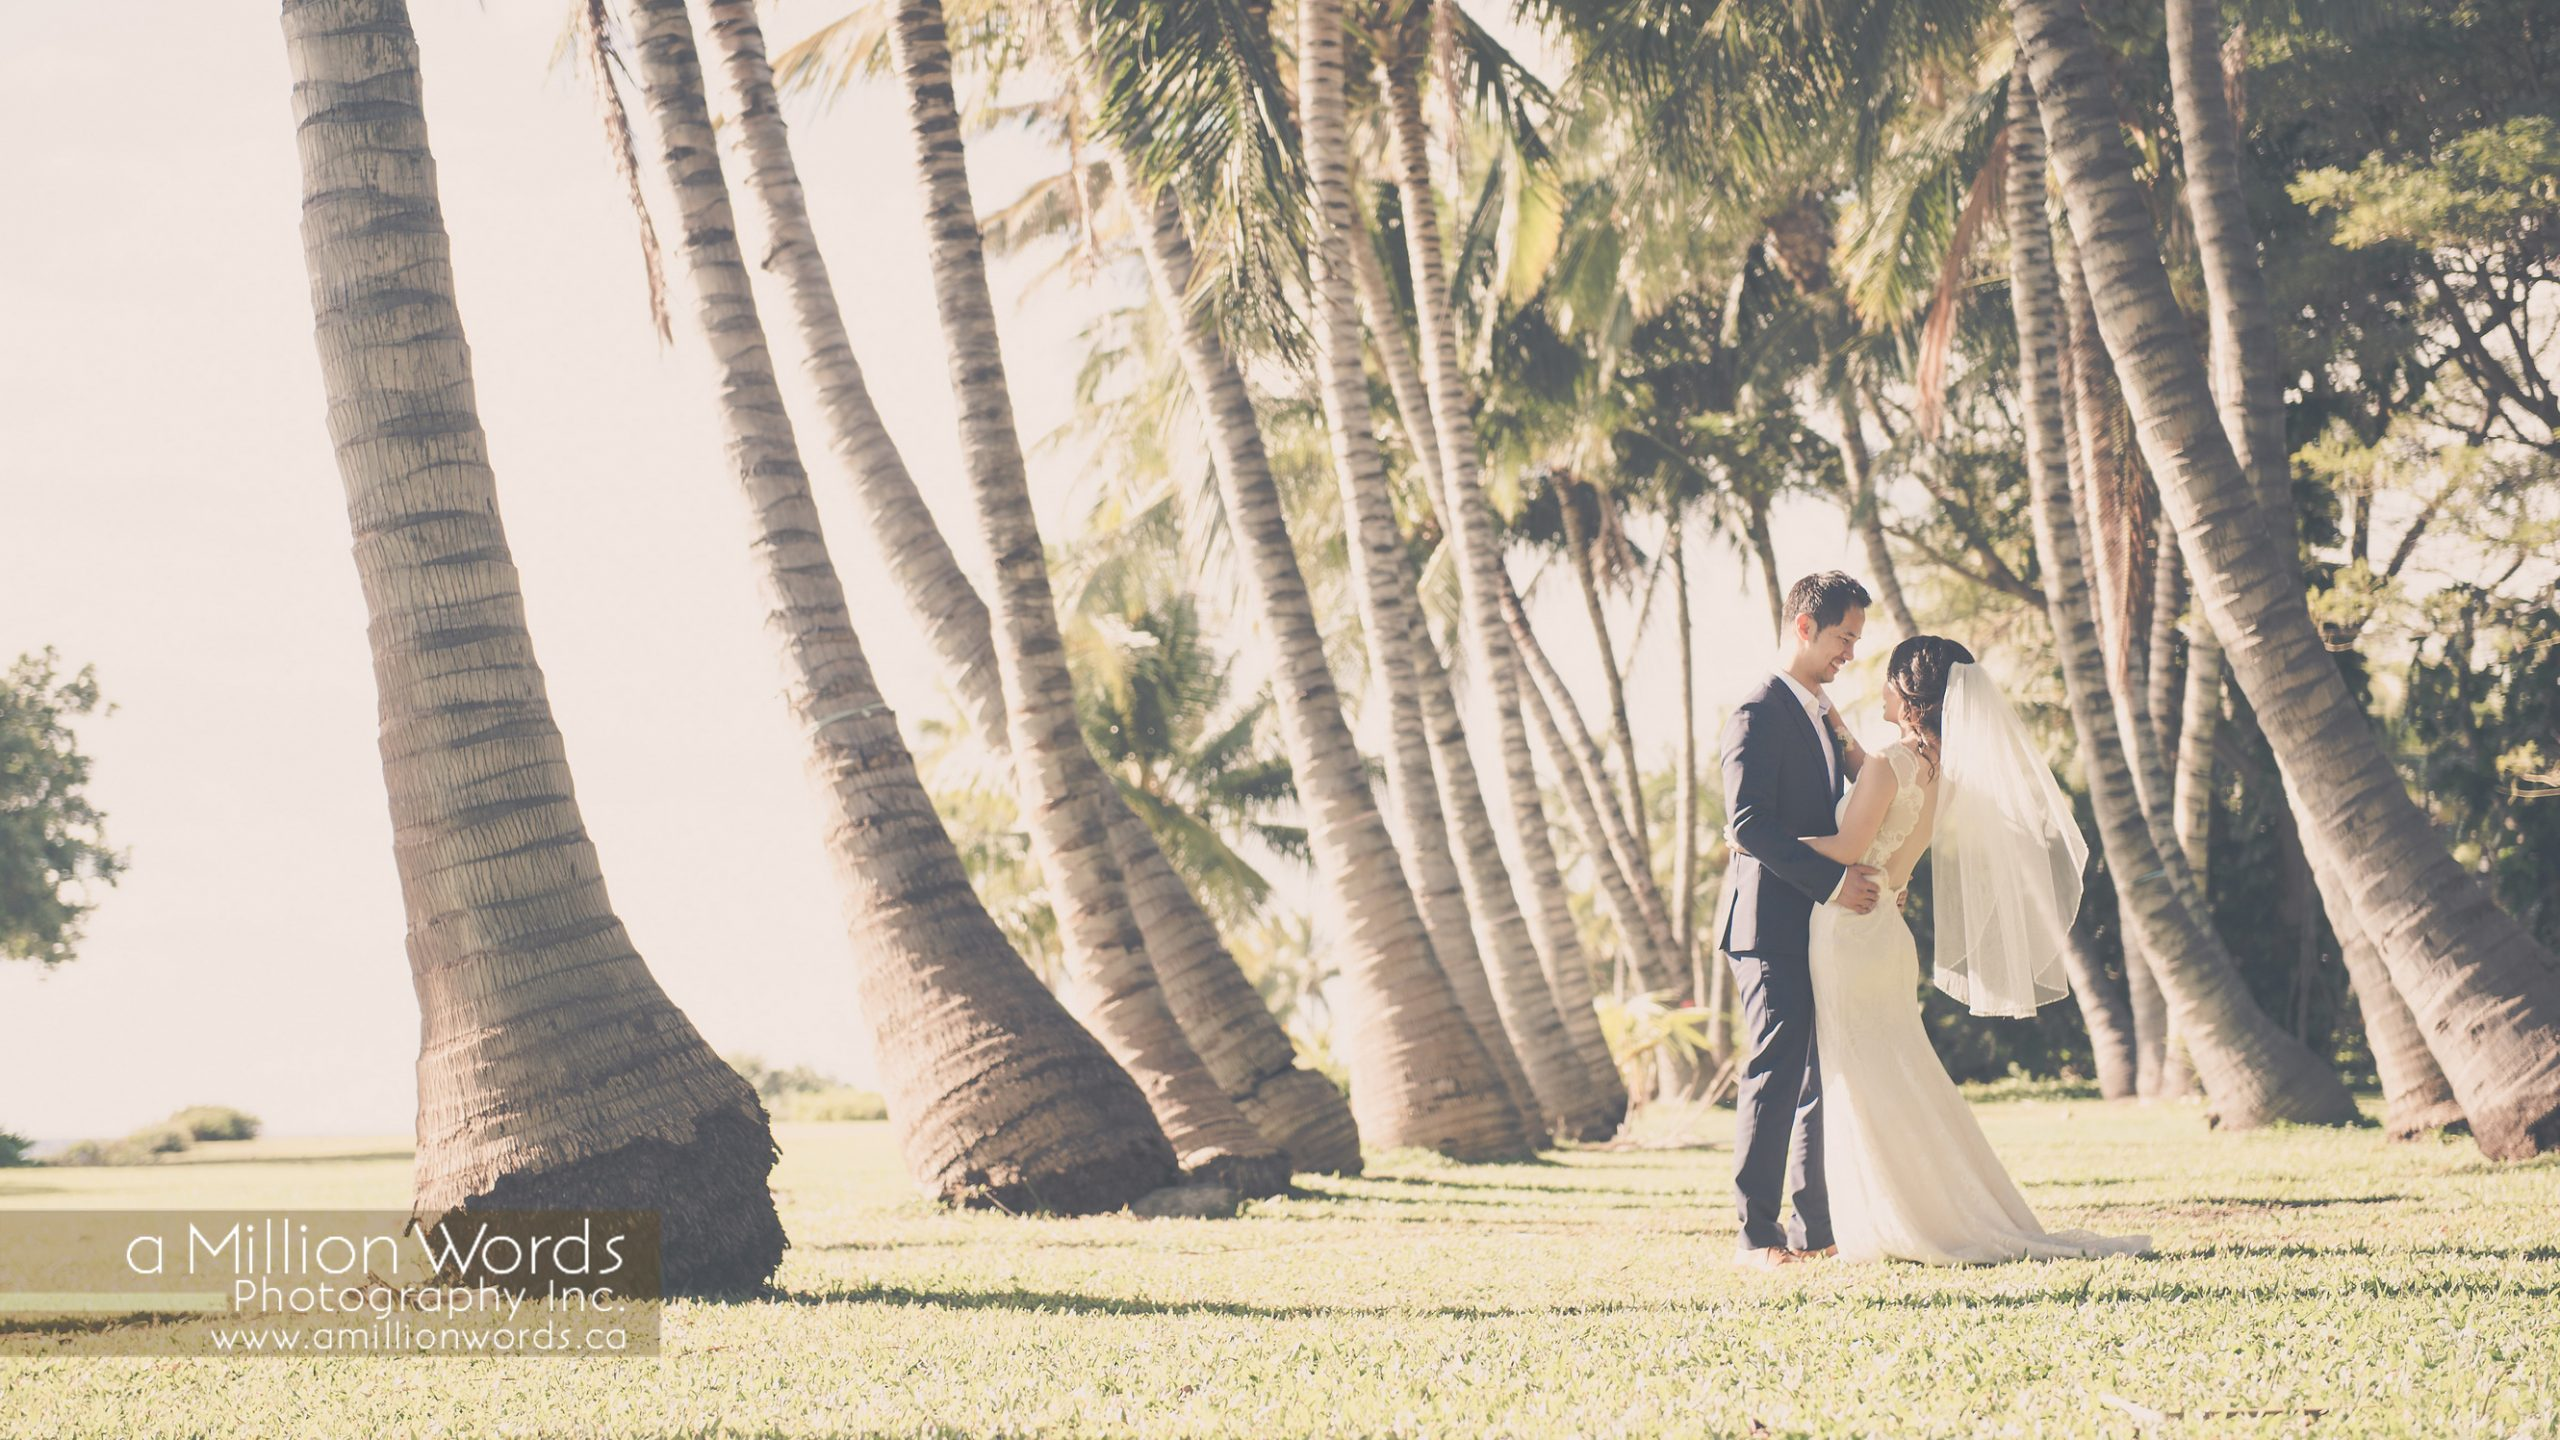 kw_destination_wedding_photography21